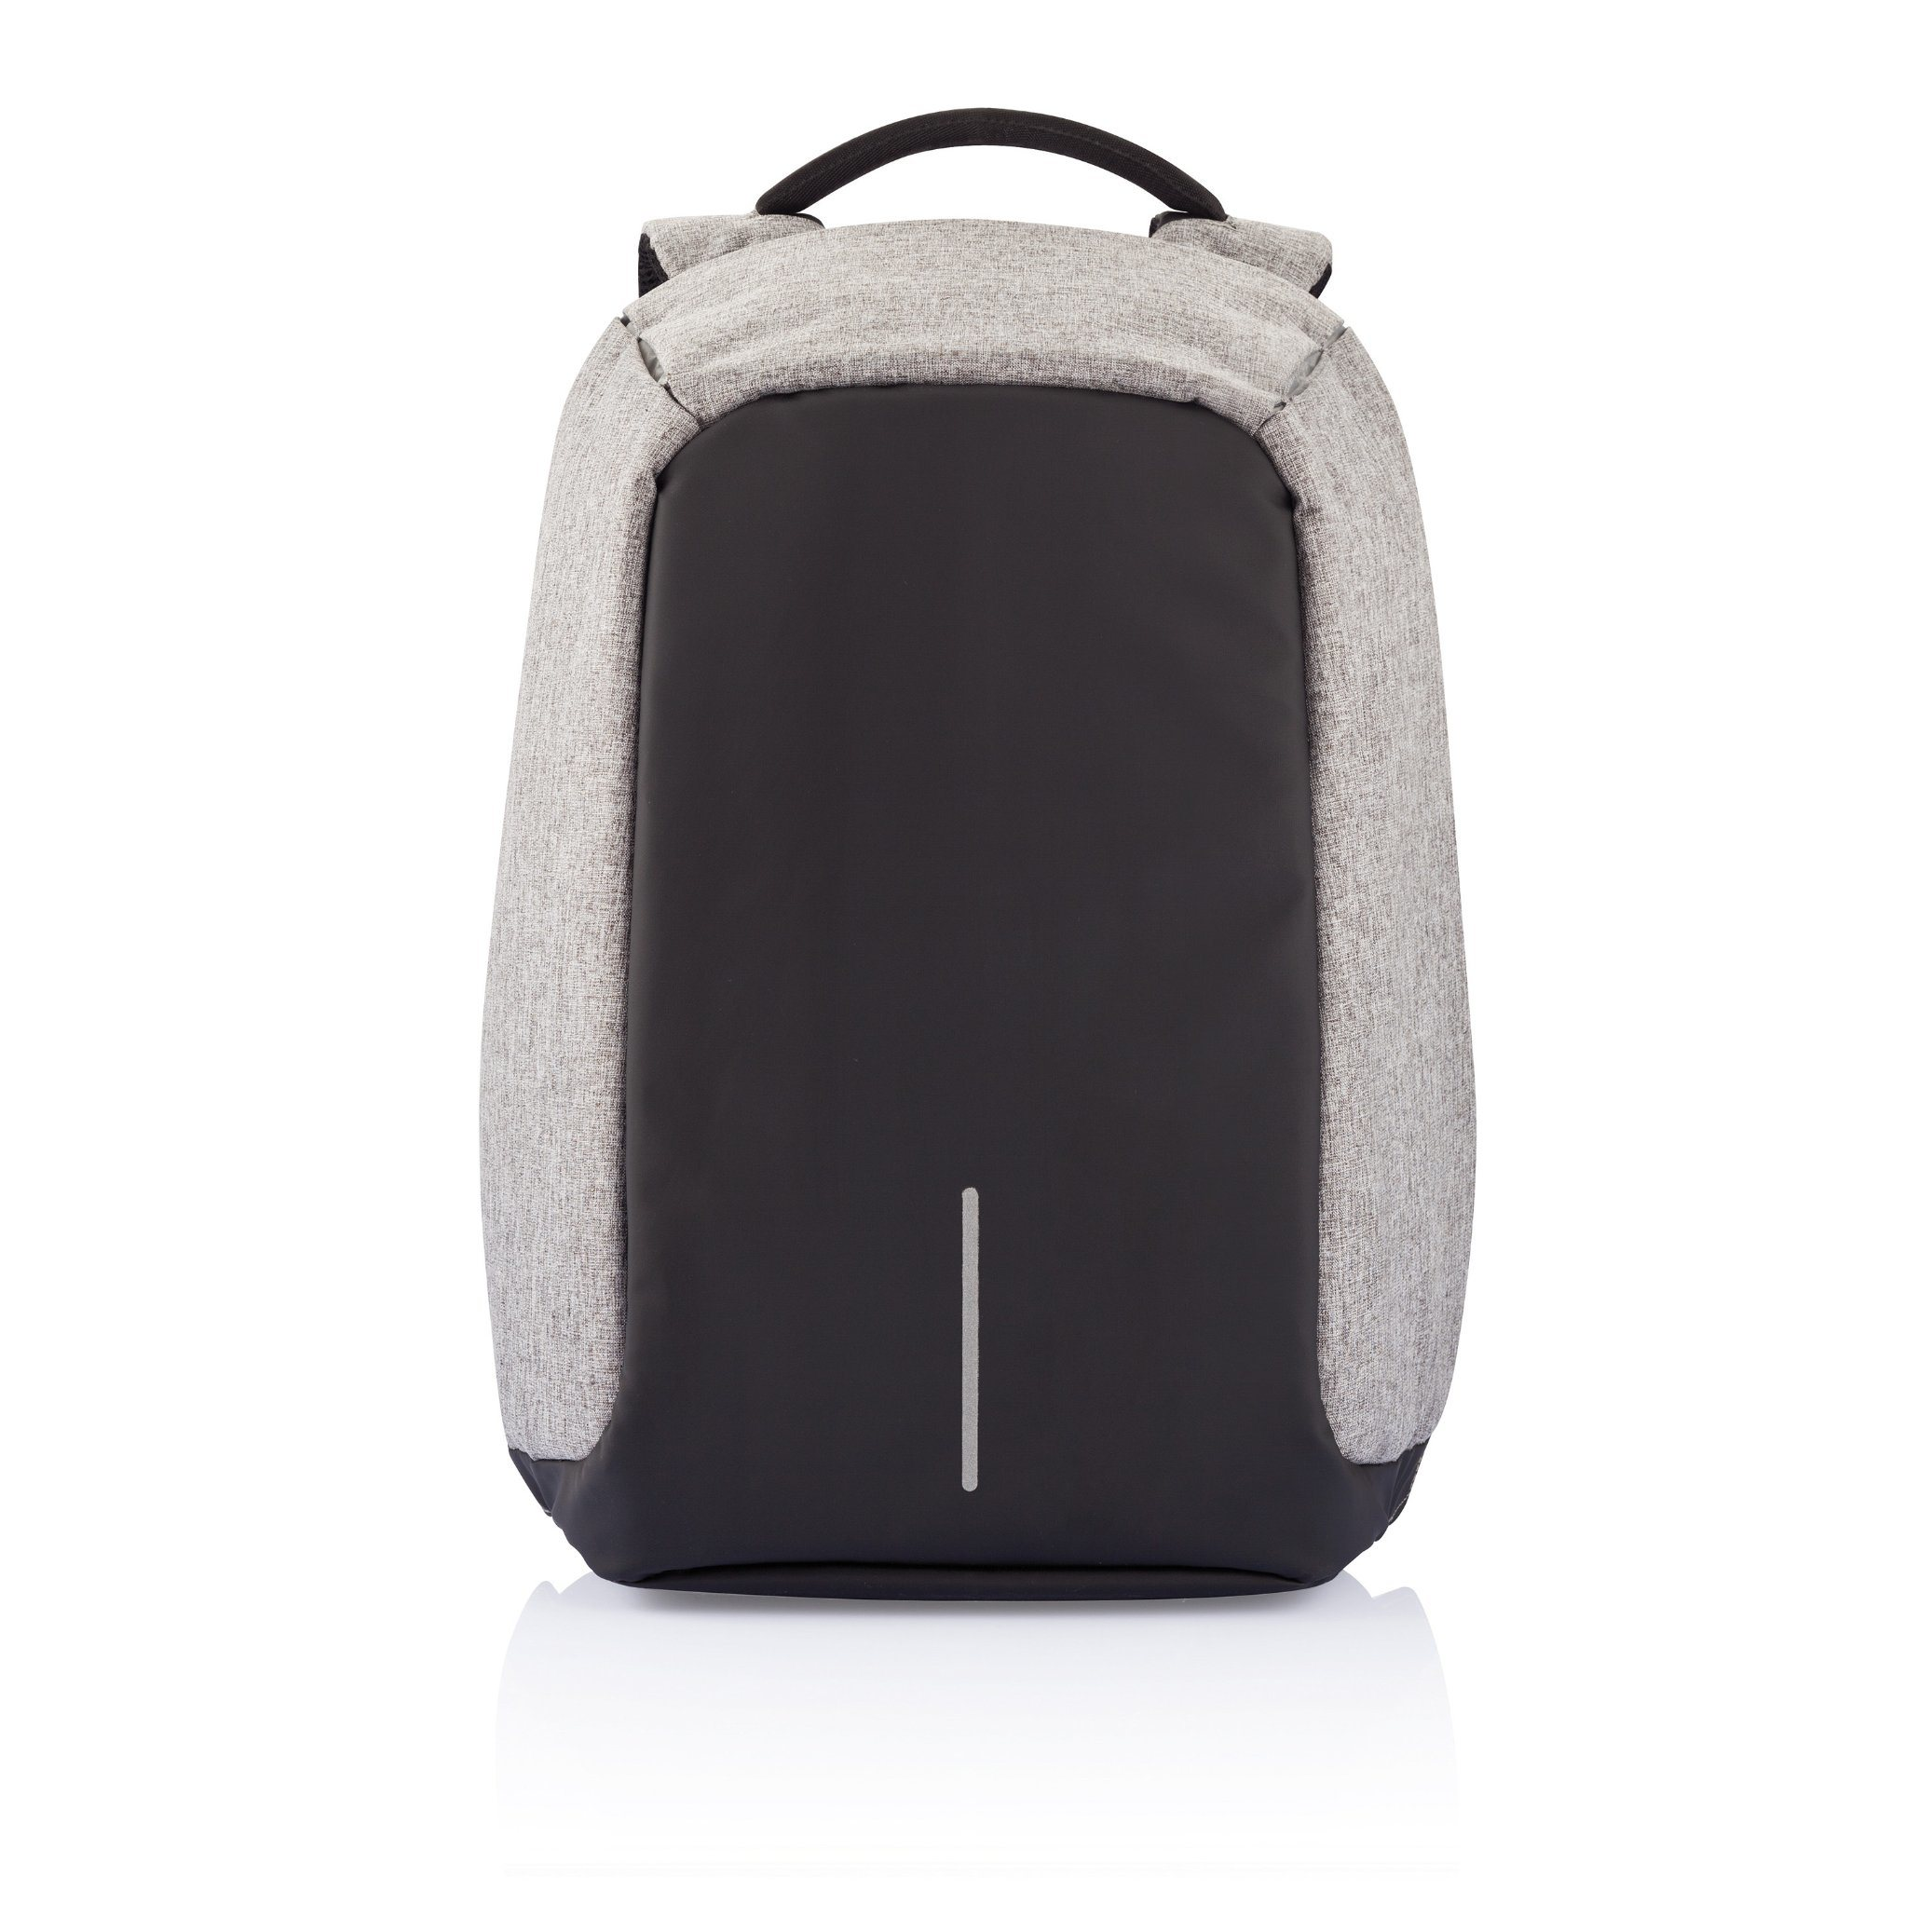 Anti-Theft Backpack for 15.6 Inch Laptop with High Quality (SB6463)